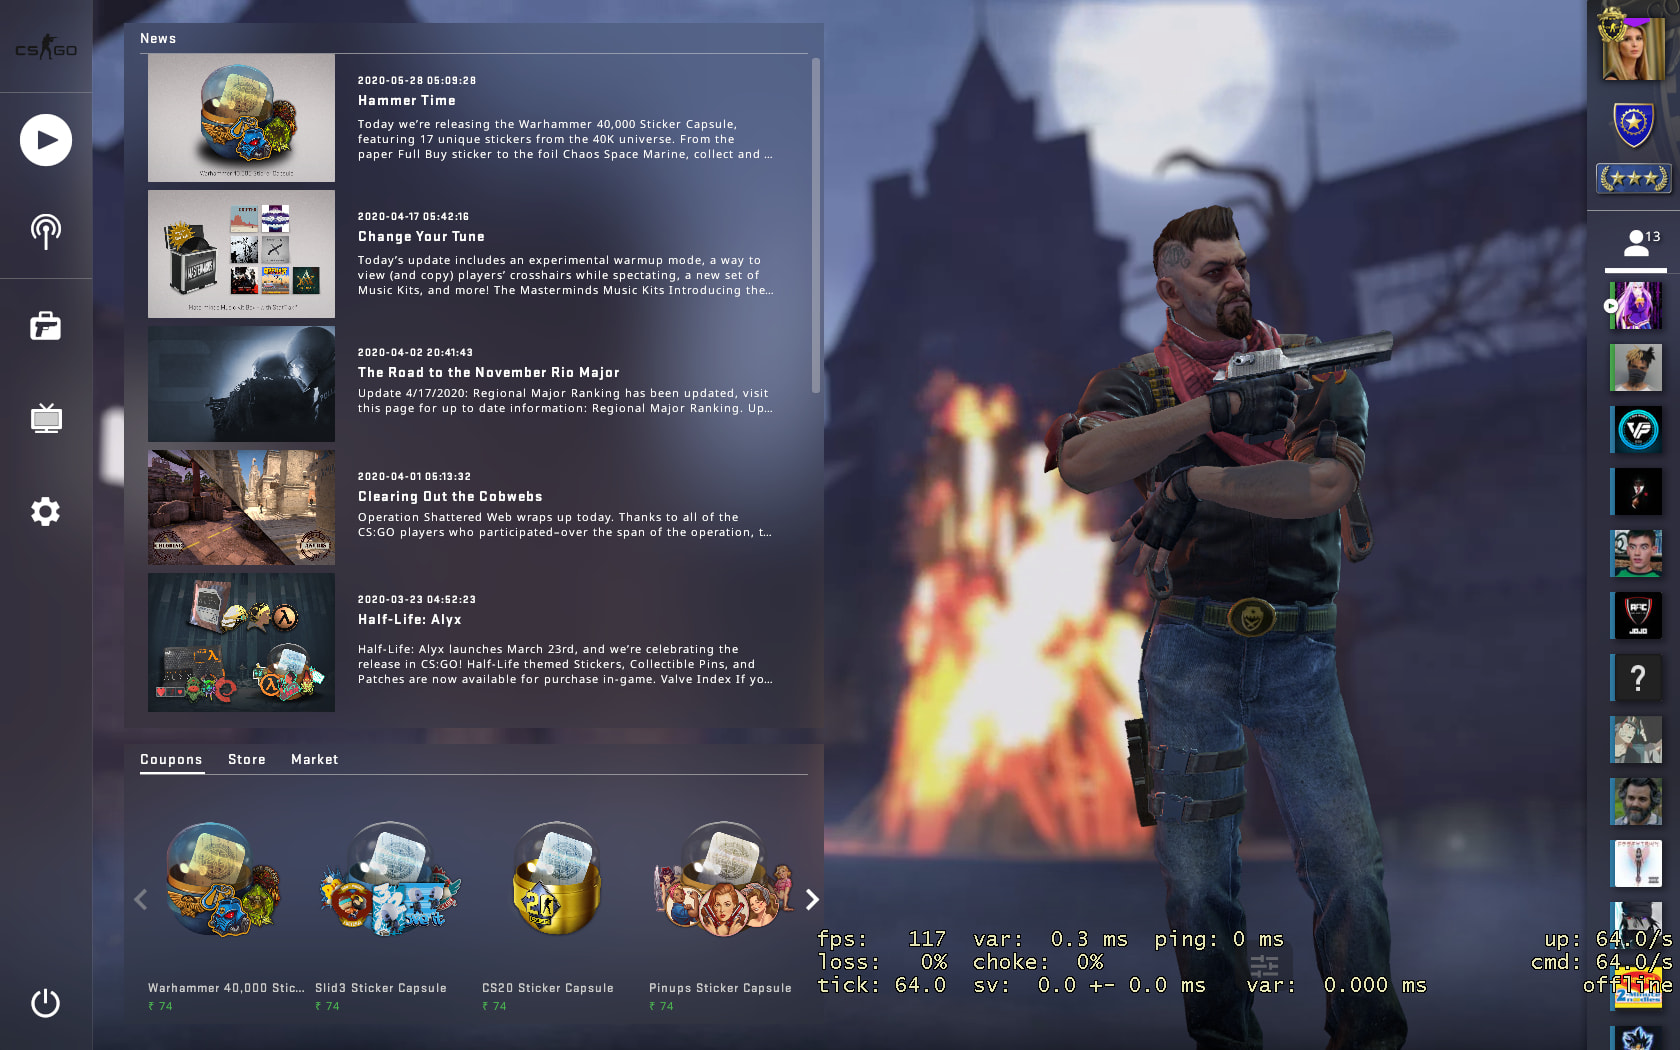 C4 Kill Feed, Improved Grenade Mechanics, Background Selection added In New BIG CSGO UPDATE 3